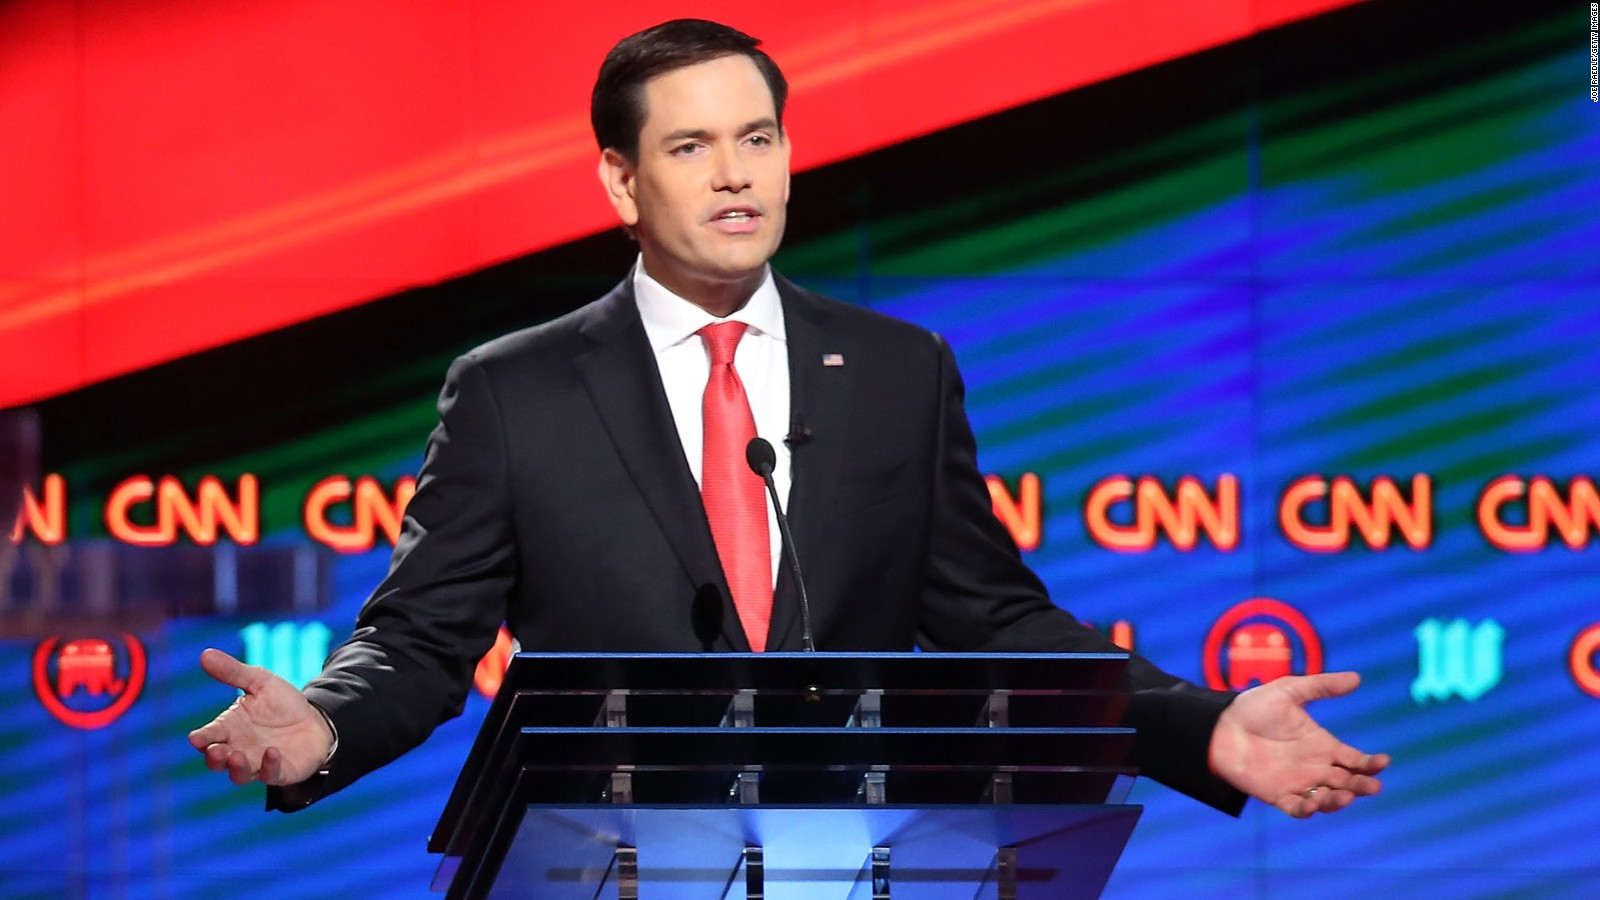 What's next for Marco Rubio?